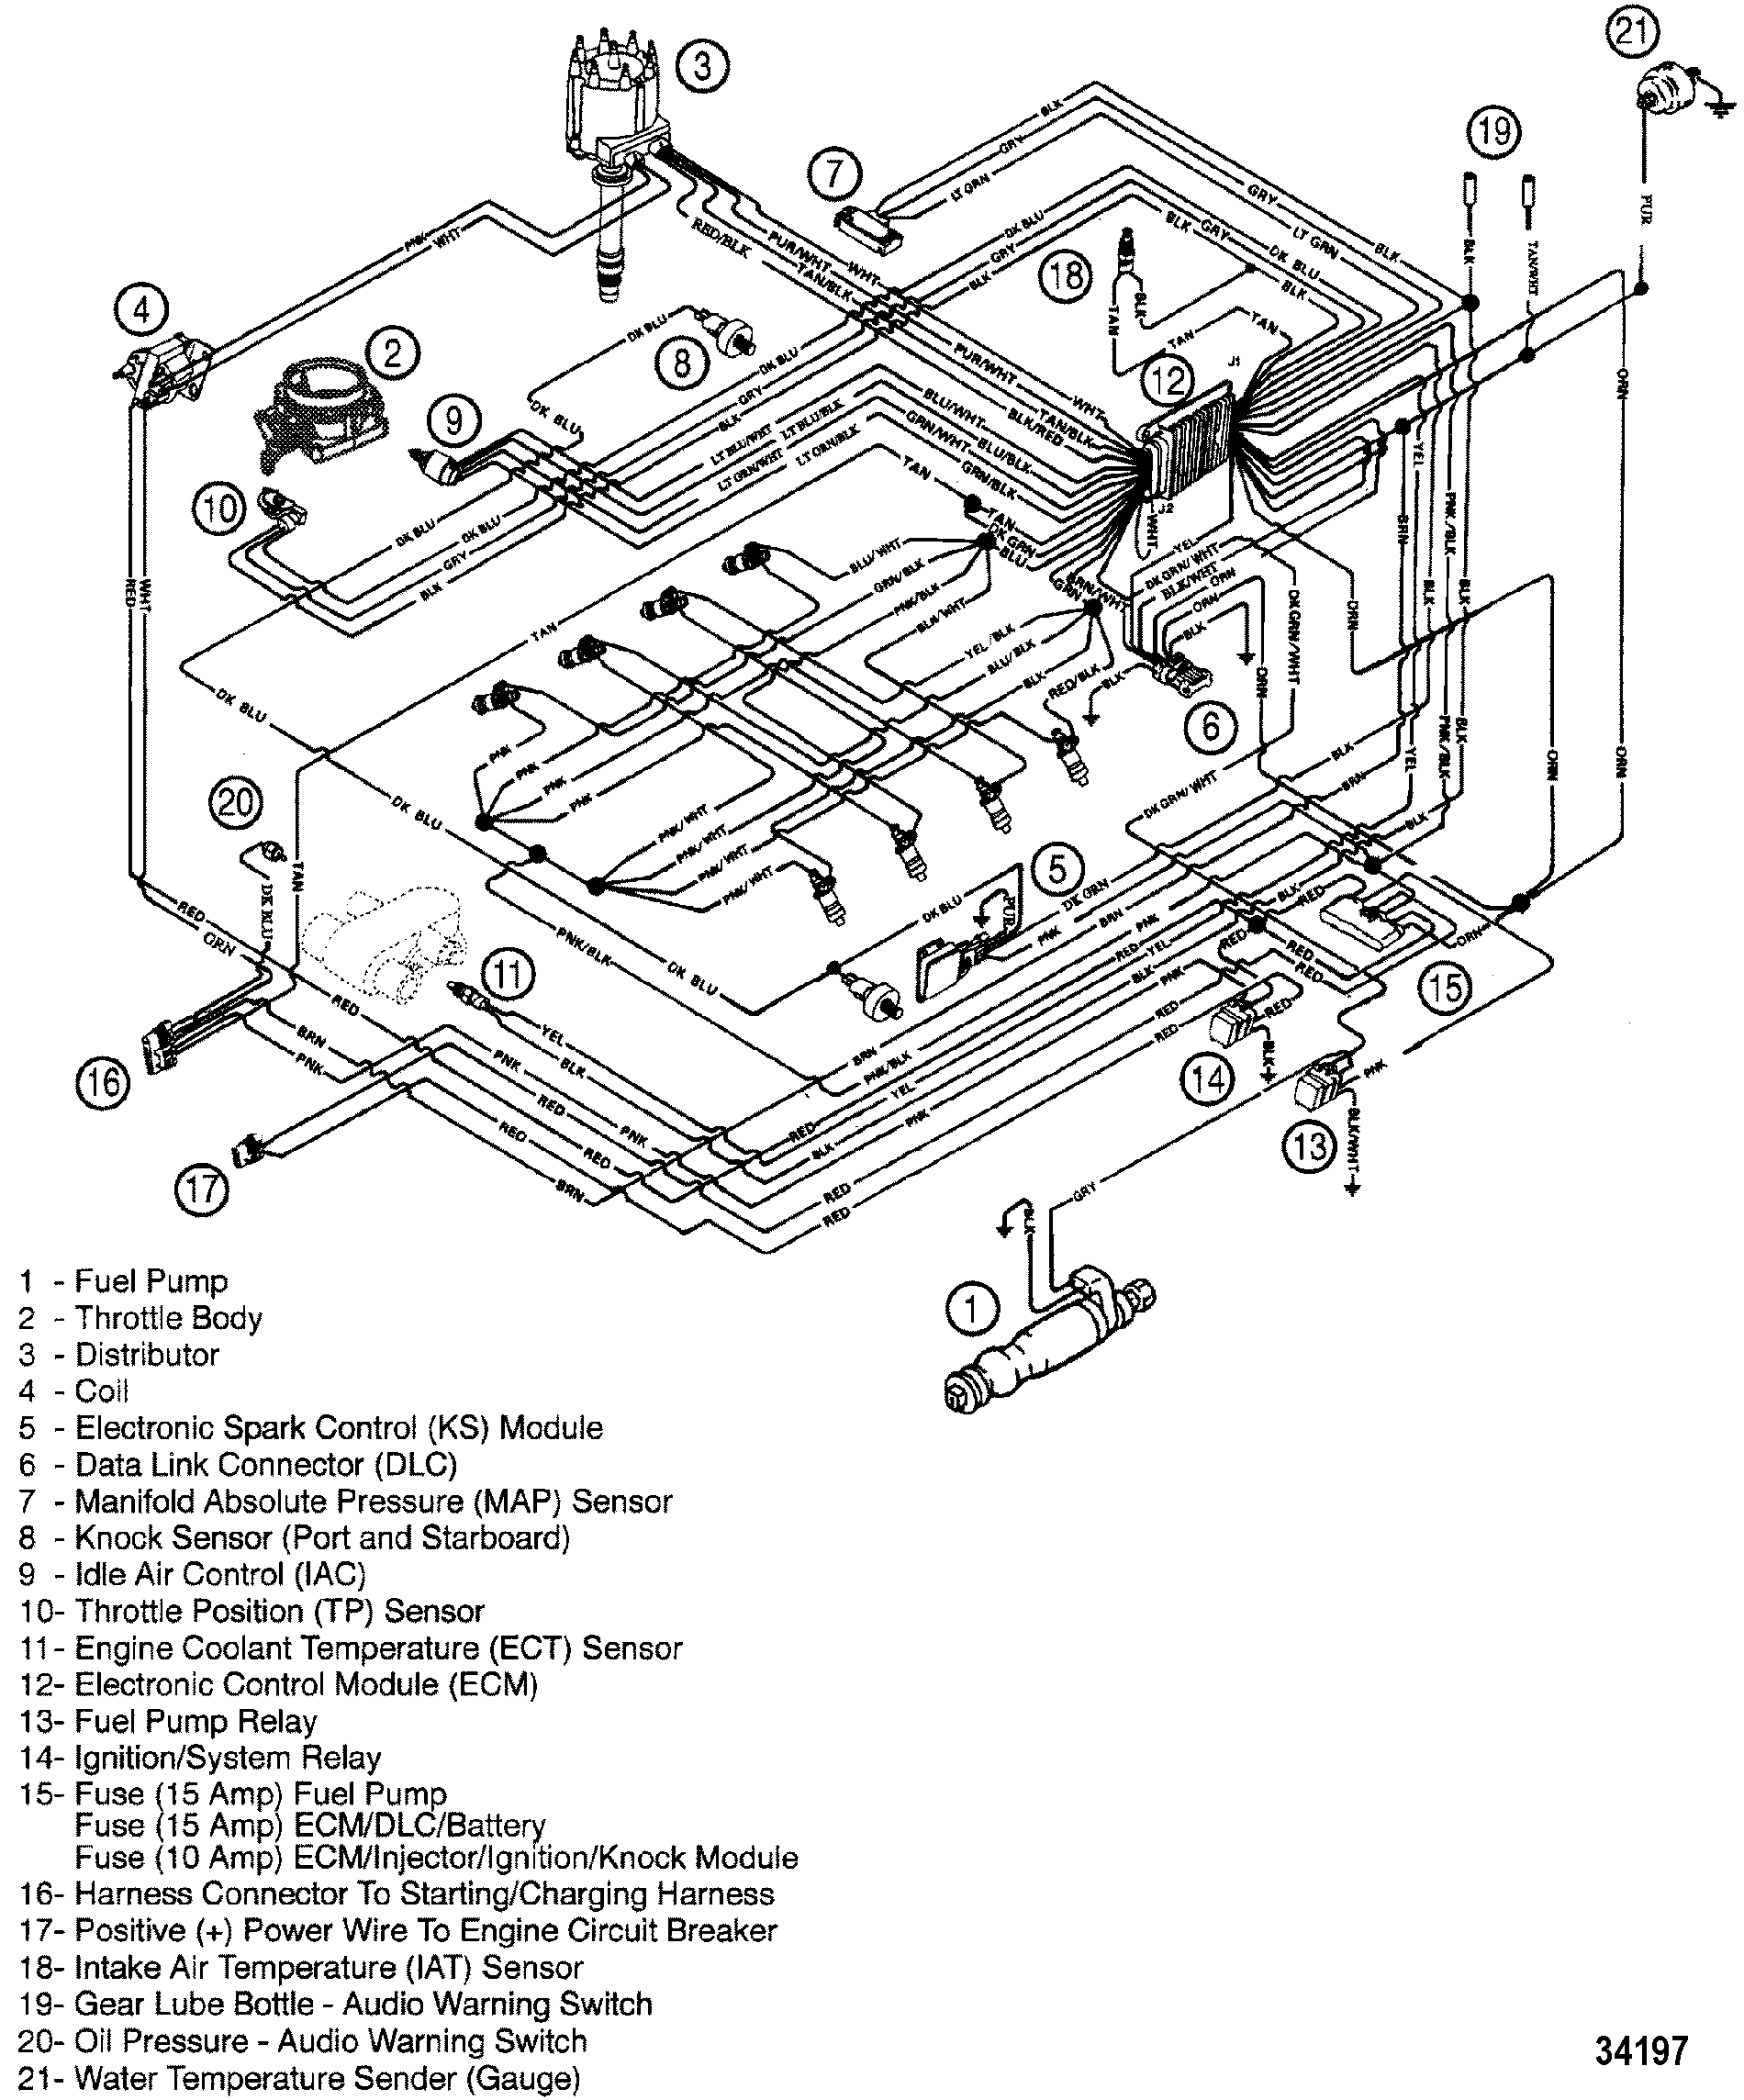 1986 Mercruiser 4 3 Engine Wiring Diagram Libraries 0 Temp Hecho Cp Performance Harness Efisection Drawing Hover Or Click To View Larger